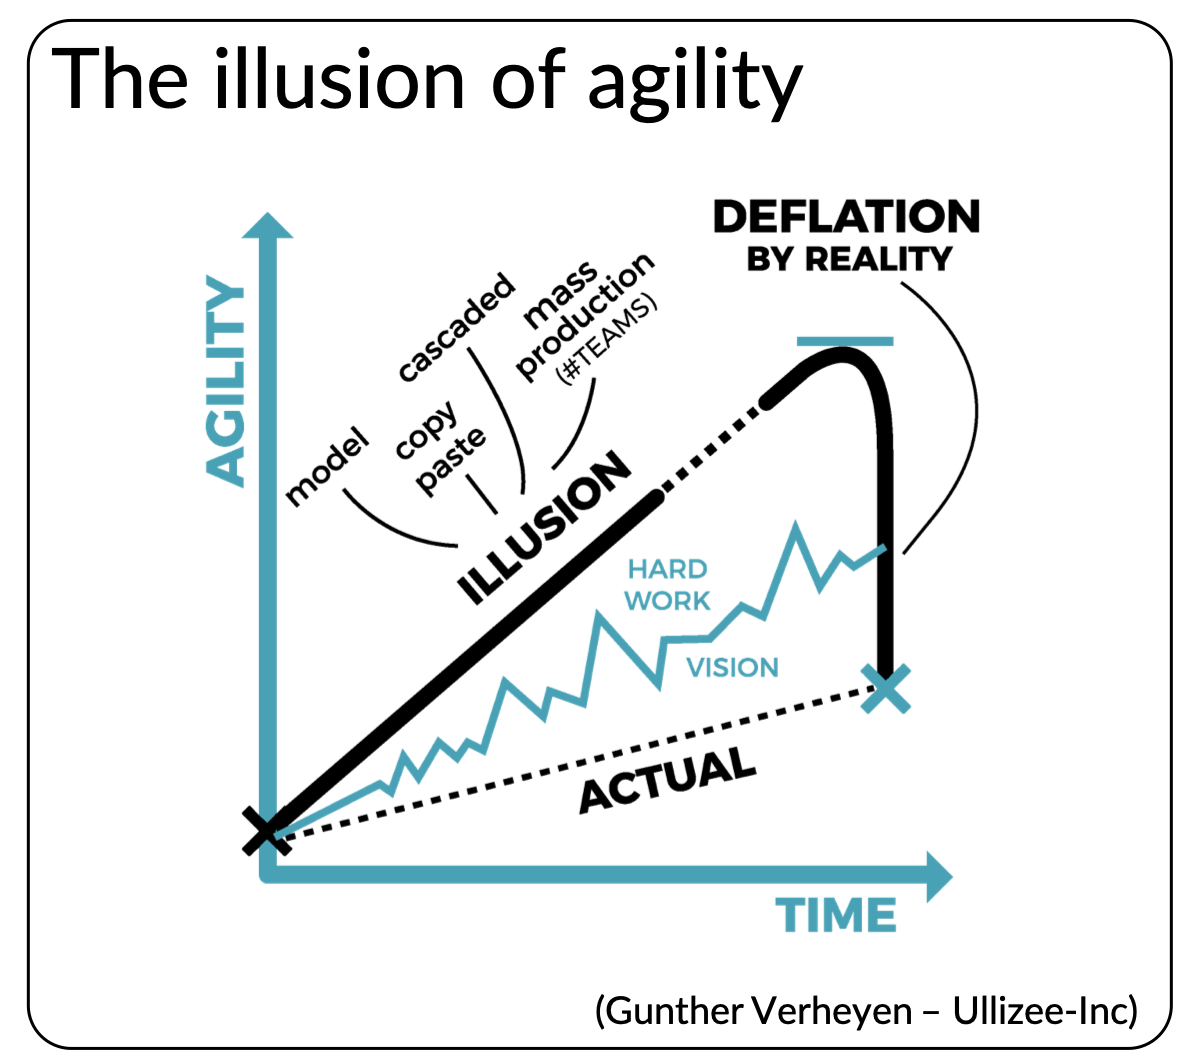 The illusion of agility (and the deflation by reality)